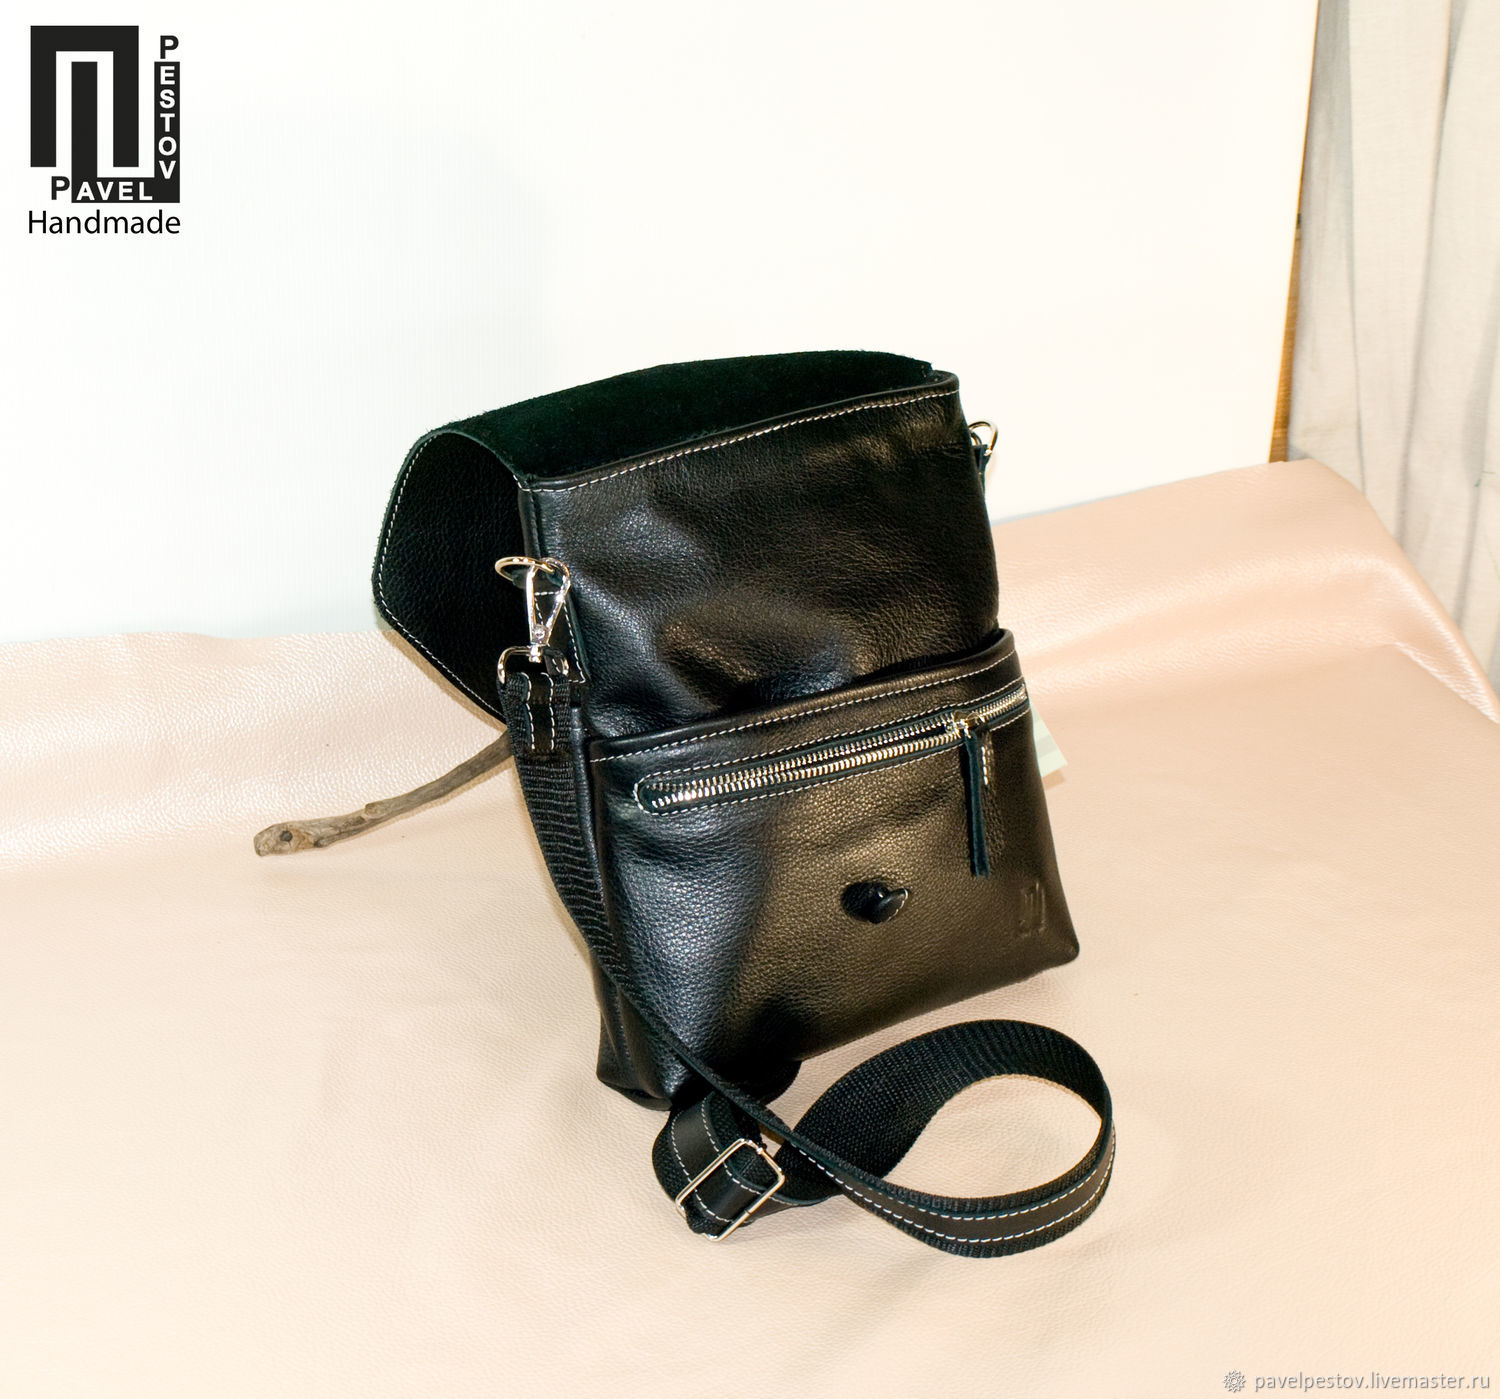 3d8c9ba8bc1b Pavel Pestov Men s Bags handmade. Order Men s shoulder bag Black (envelope )-2.